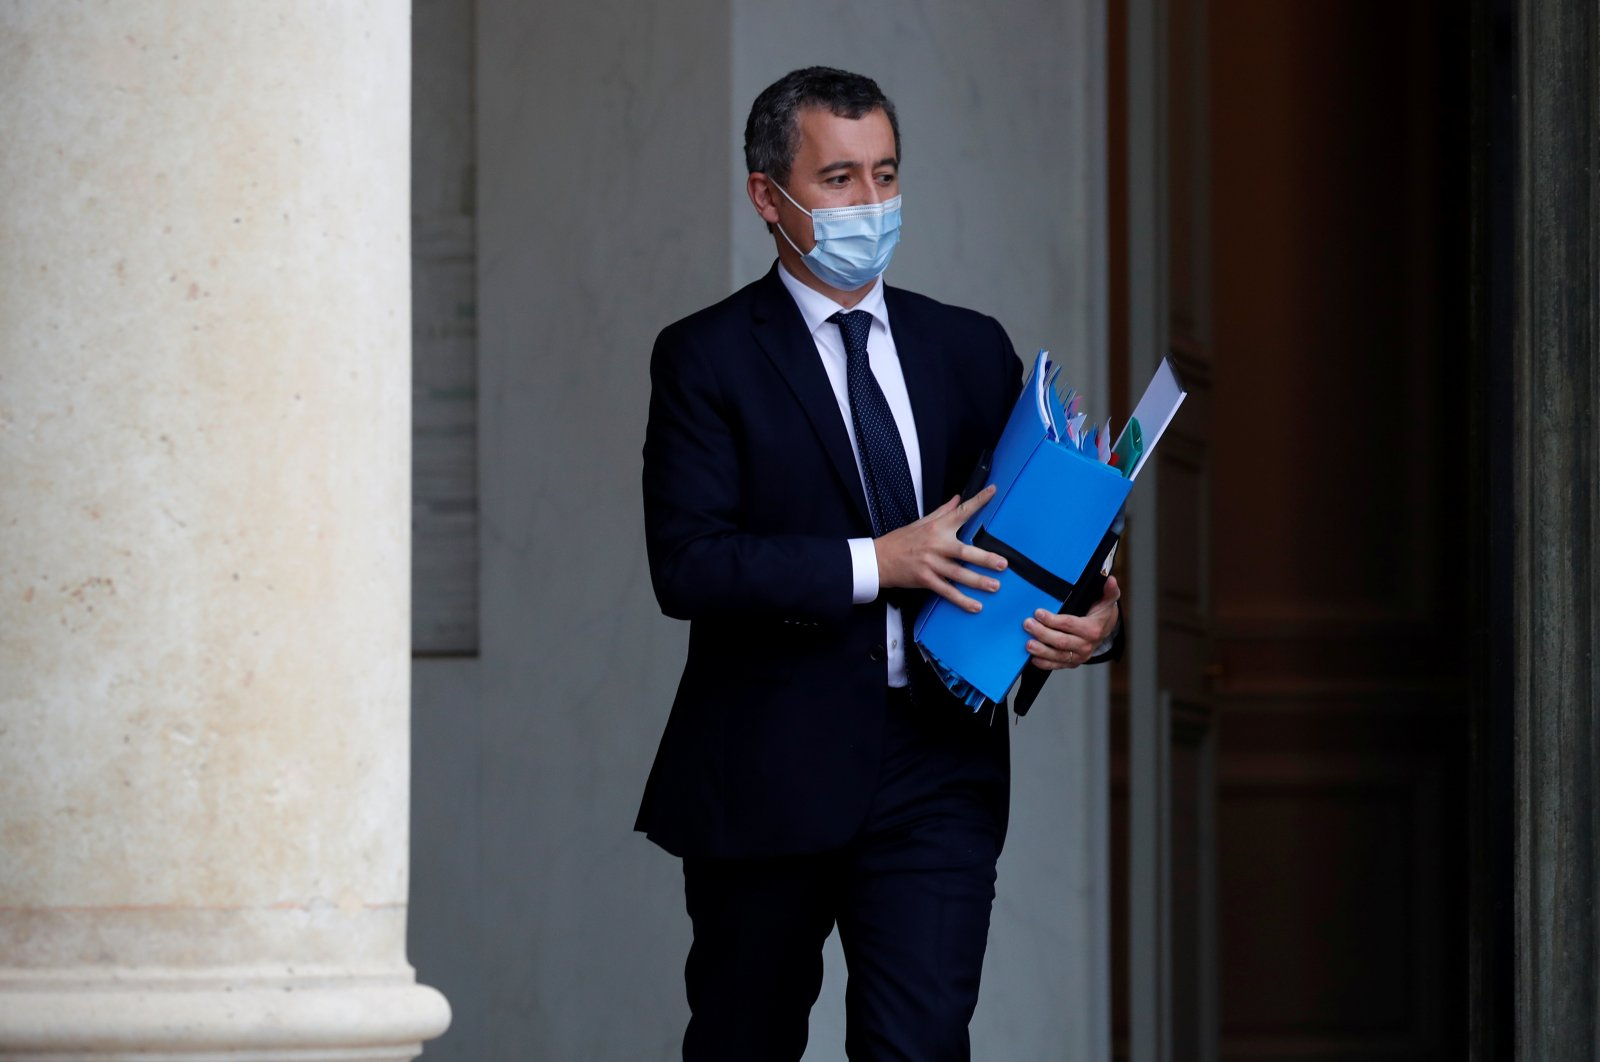 French Interior Minister Gerald Darmanin, wearing a protective mask, leaves following the weekly Cabinet meeting at the Elysee Palace in Paris, France, Oct. 28, 2020. (Reuters Photo)